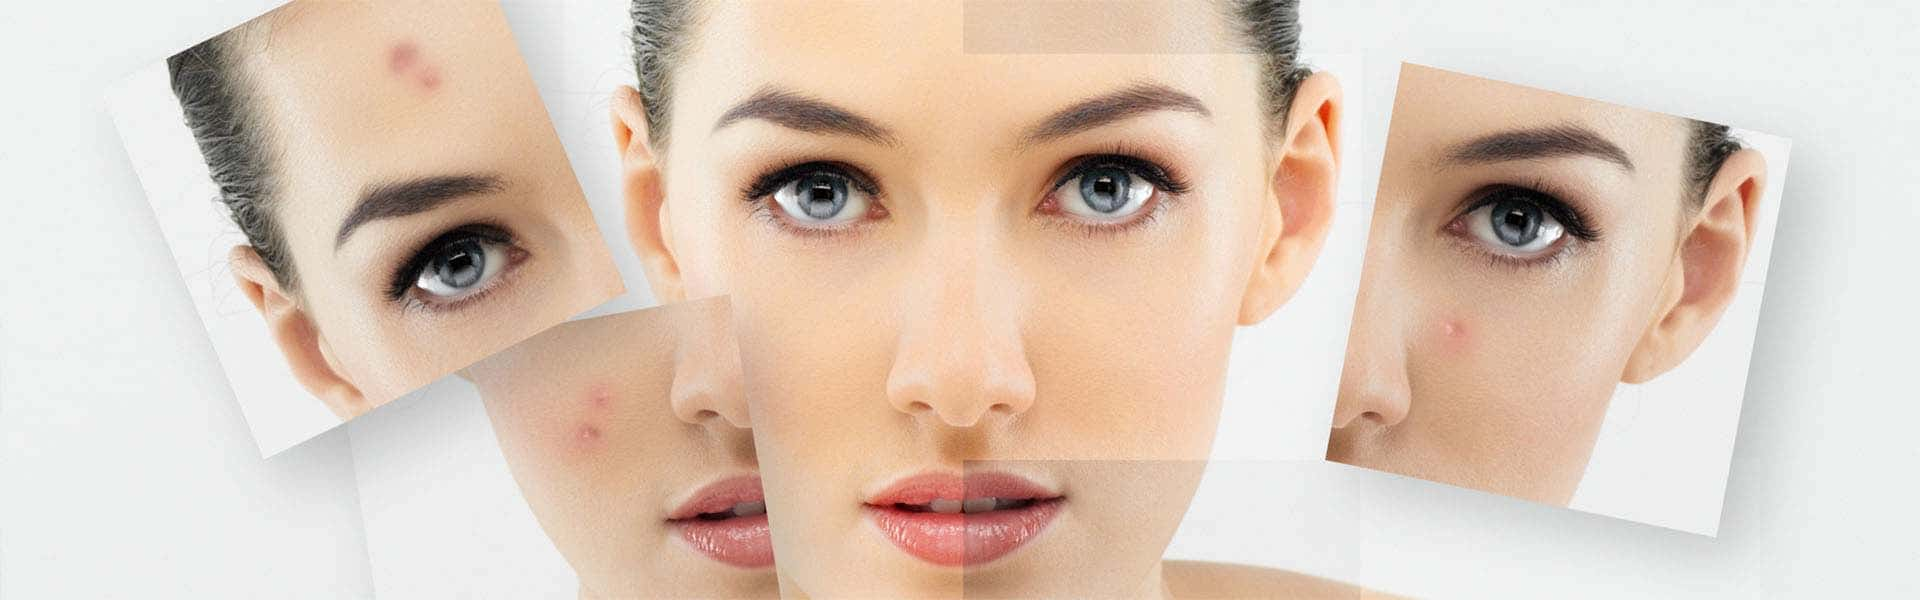 Best Acne Scar Treatment 2019 – Buyer's Guide and Reviews